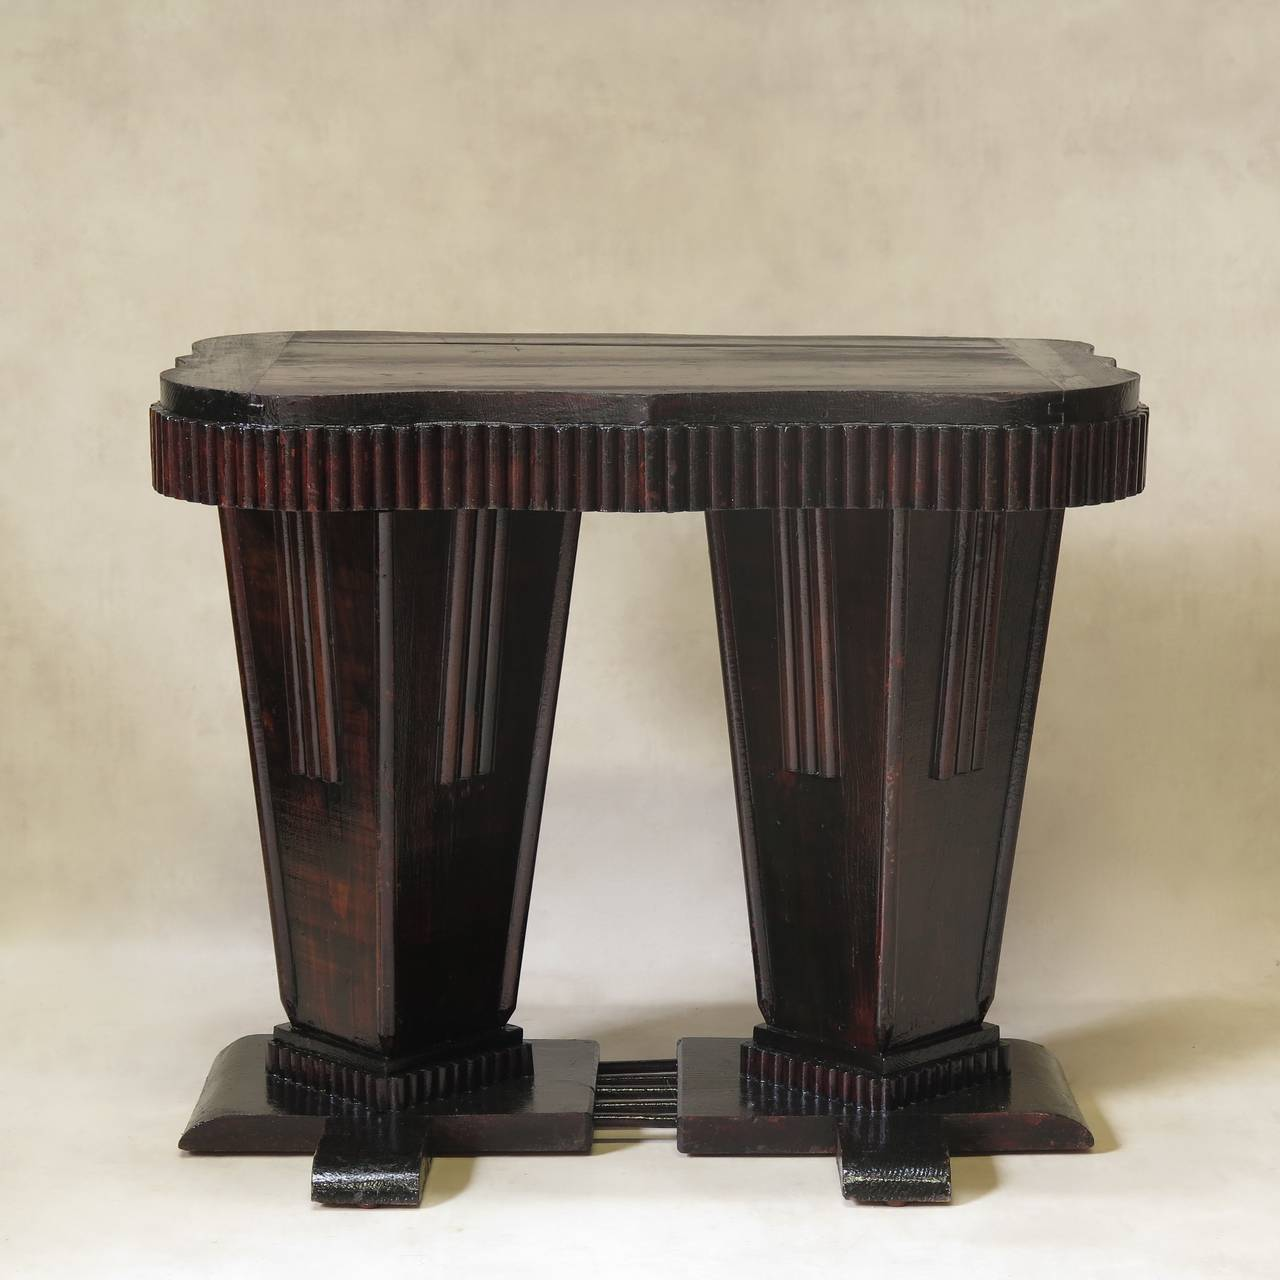 Unusual Art Deco Table and Chair Set, France, 1930s 8